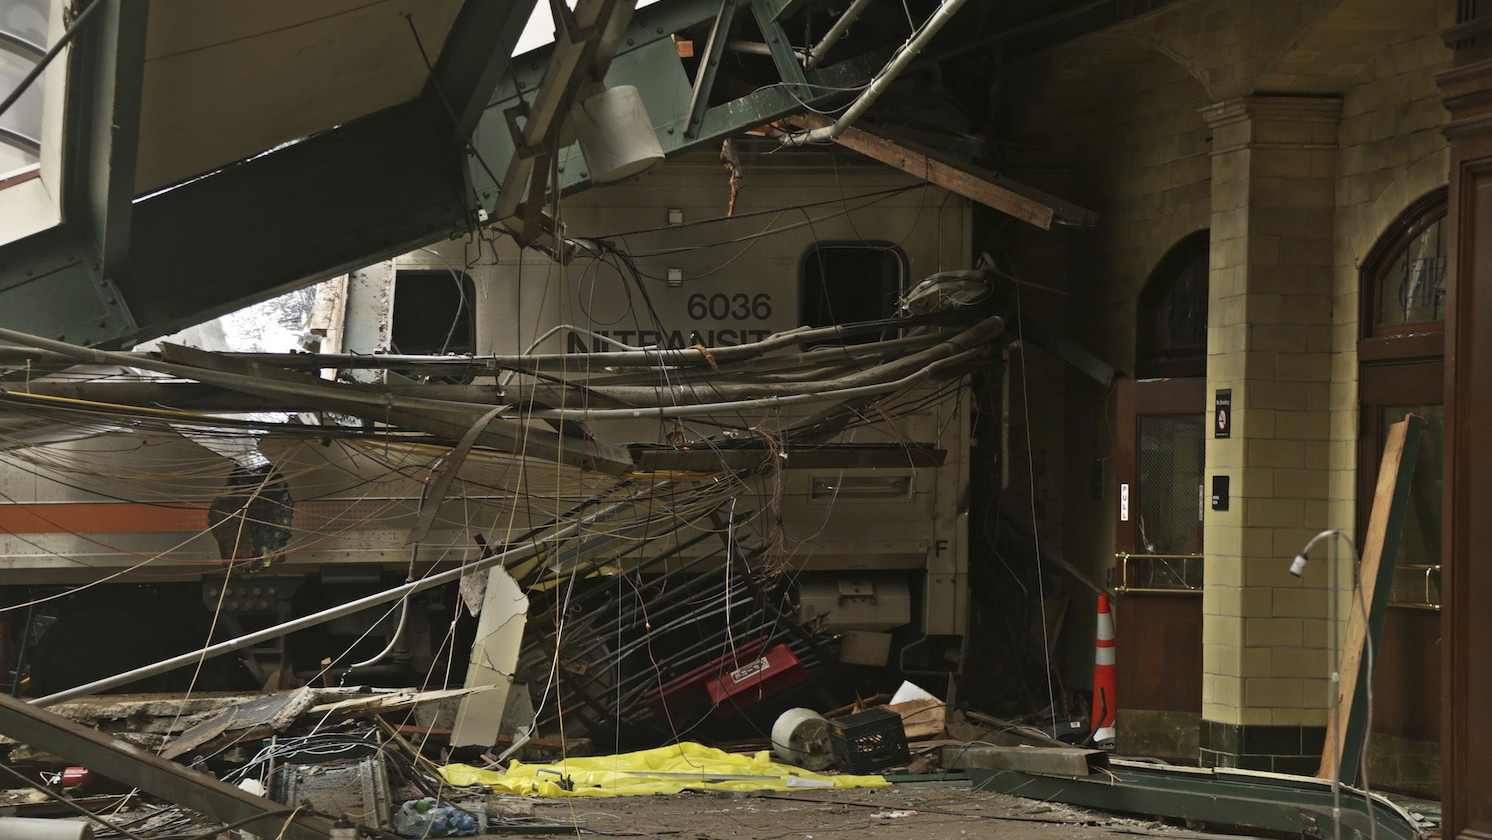 This Oct. 1, 2016, photo provided by the National Transportation Safety Board shows damage done to the Hoboken Terminal in Hoboken, N.J., after a ccommuter train crash that killed one person and injured more than 100 others last week. NTSB vice chair T. Bella Dinh-Zarr said the NTSB is hopeful the data recorder that is in the cab control car in the front of the train is functional. That recorder hasn't been recovered yet because that part of the Hoboken station is still too dangerous to enter due to debris/compromised structure. (NTSB photo by Chris O'Neil via AP)